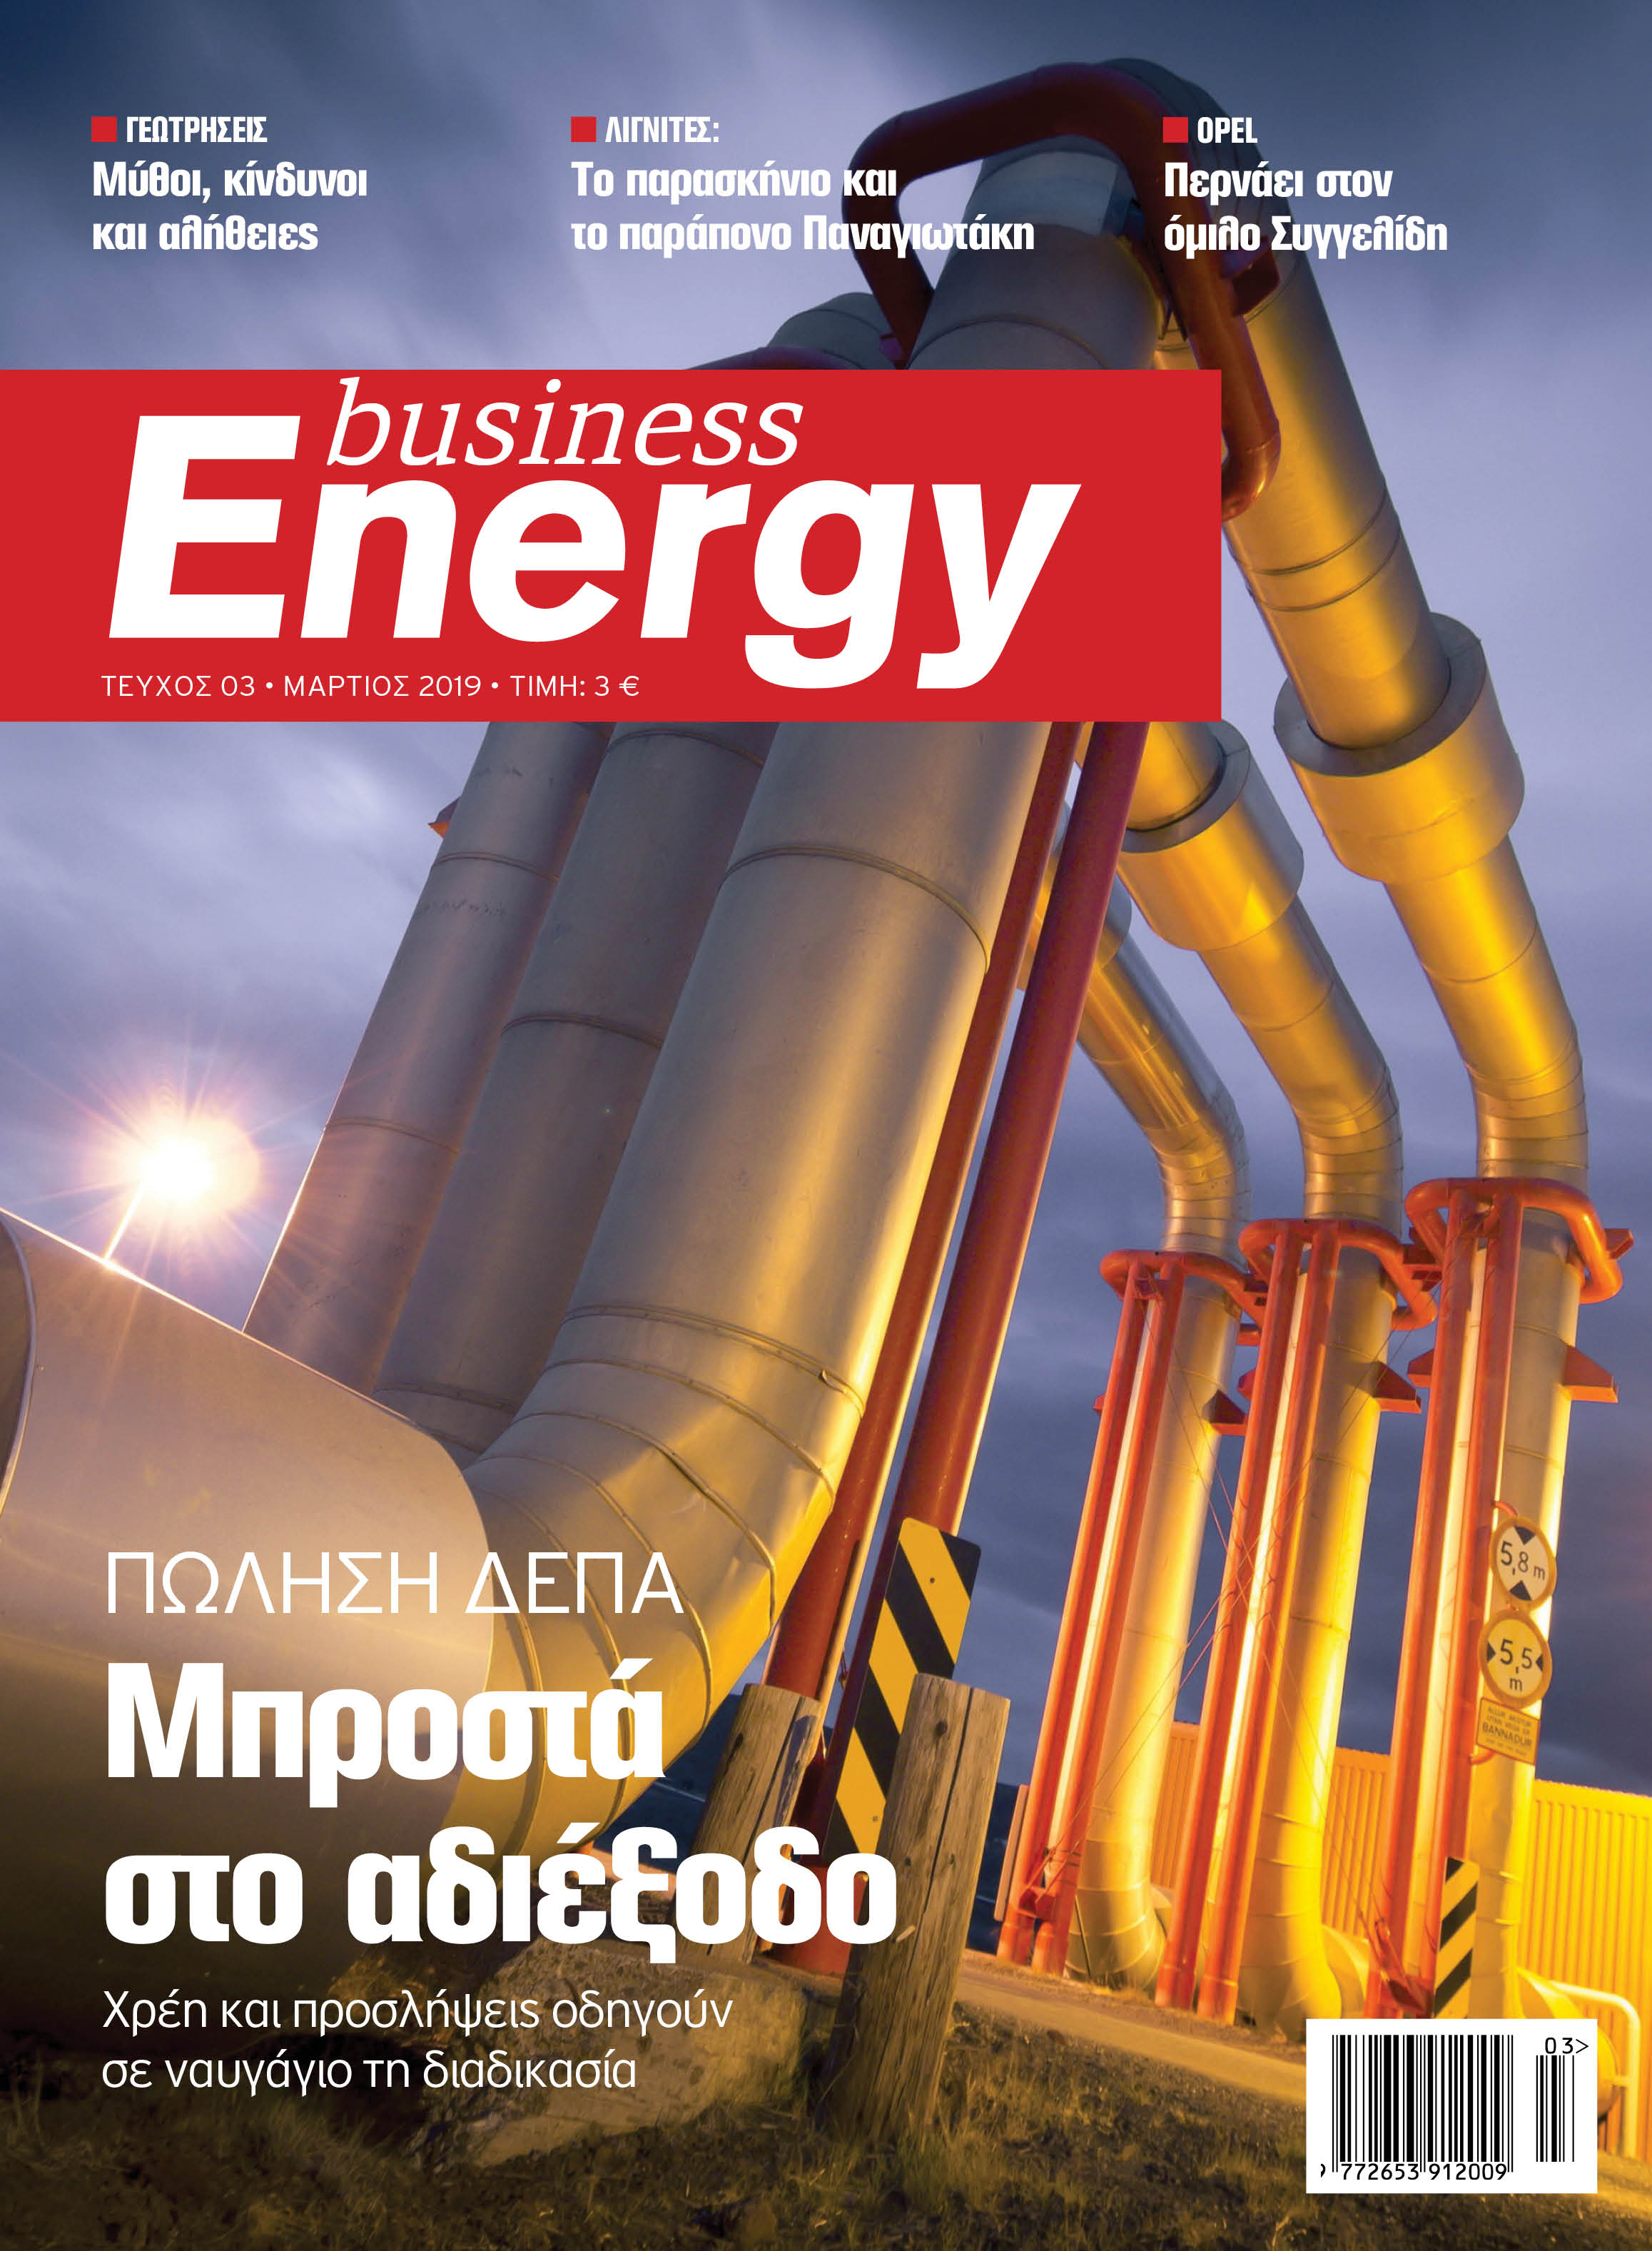 BUSINESS-ENERGY_FEBRURY_02-1.jpg